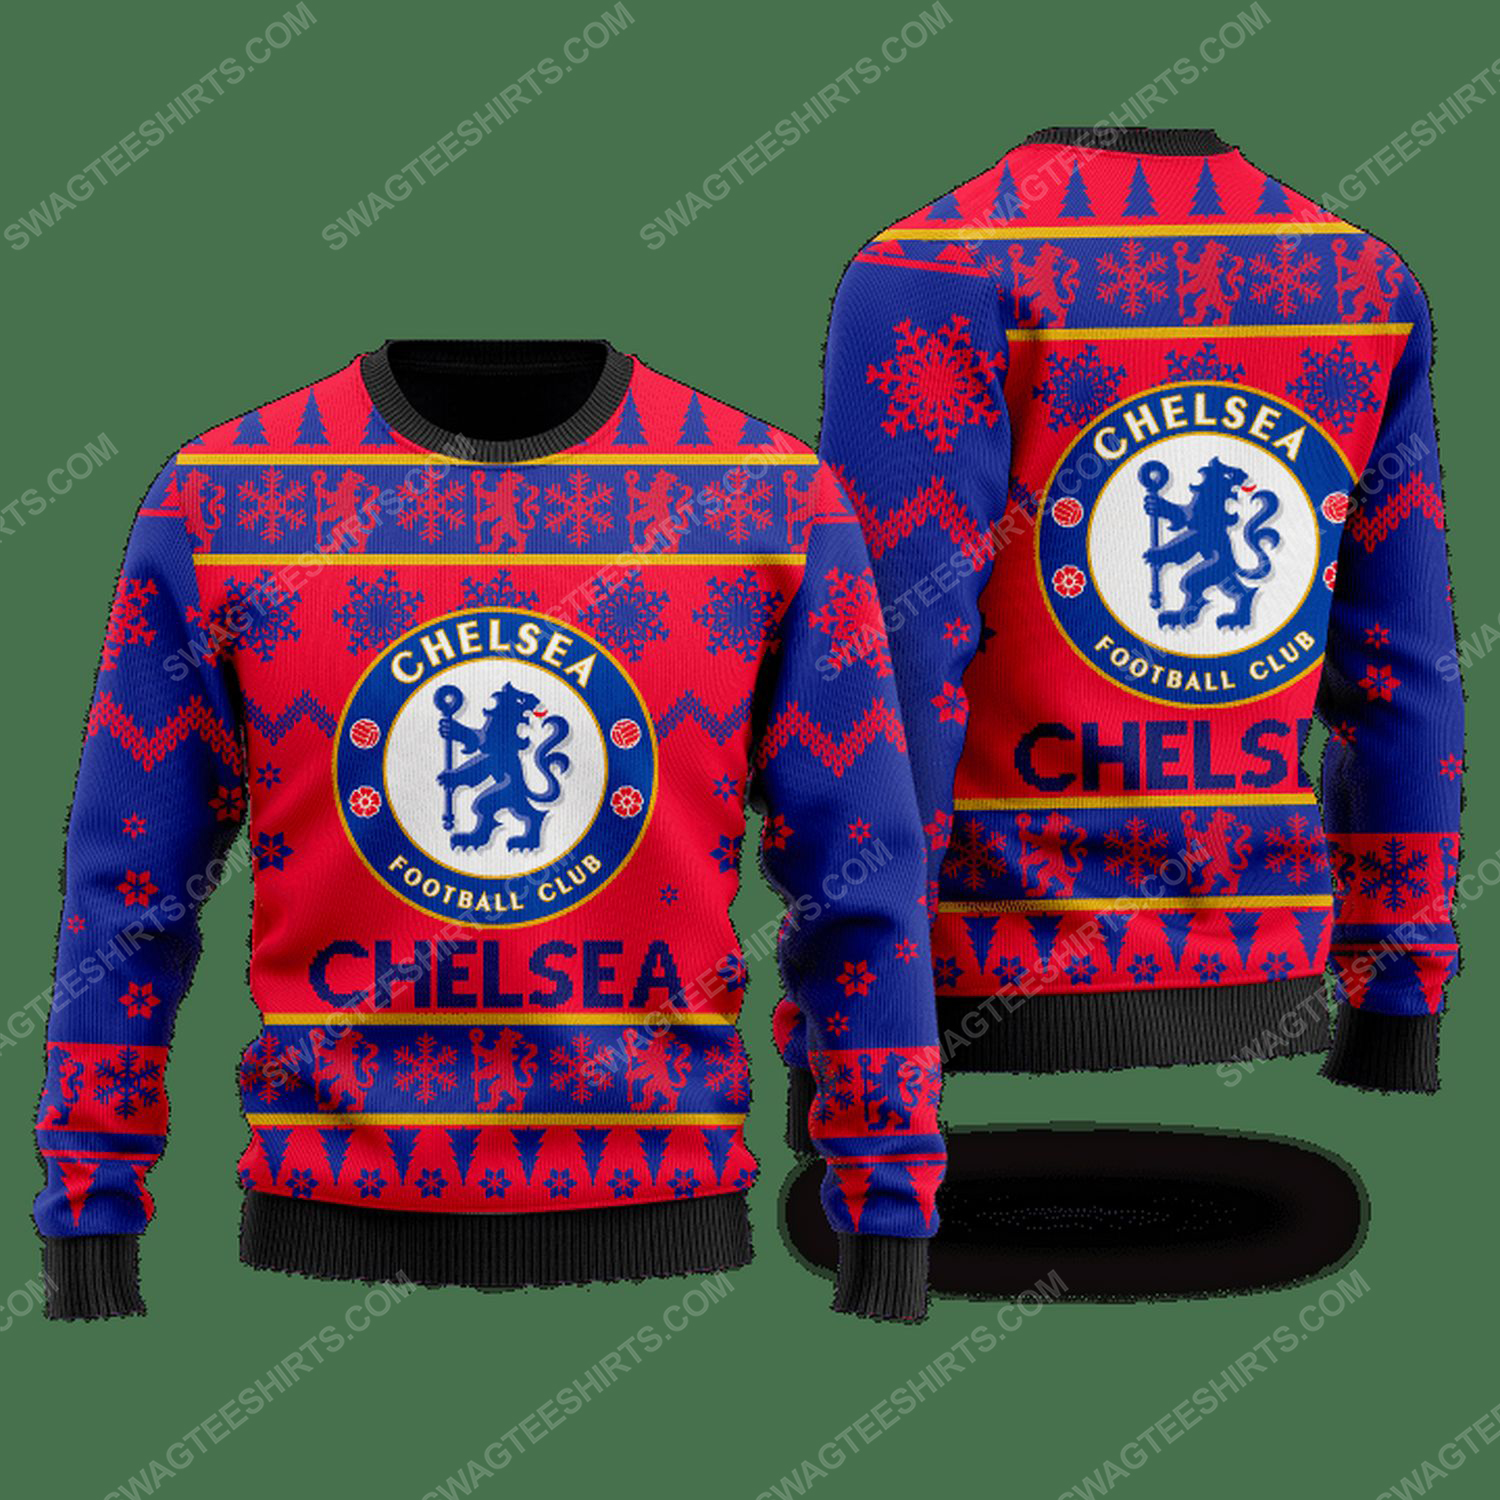 Chelsea football club ugly christmas sweater - red - Copy